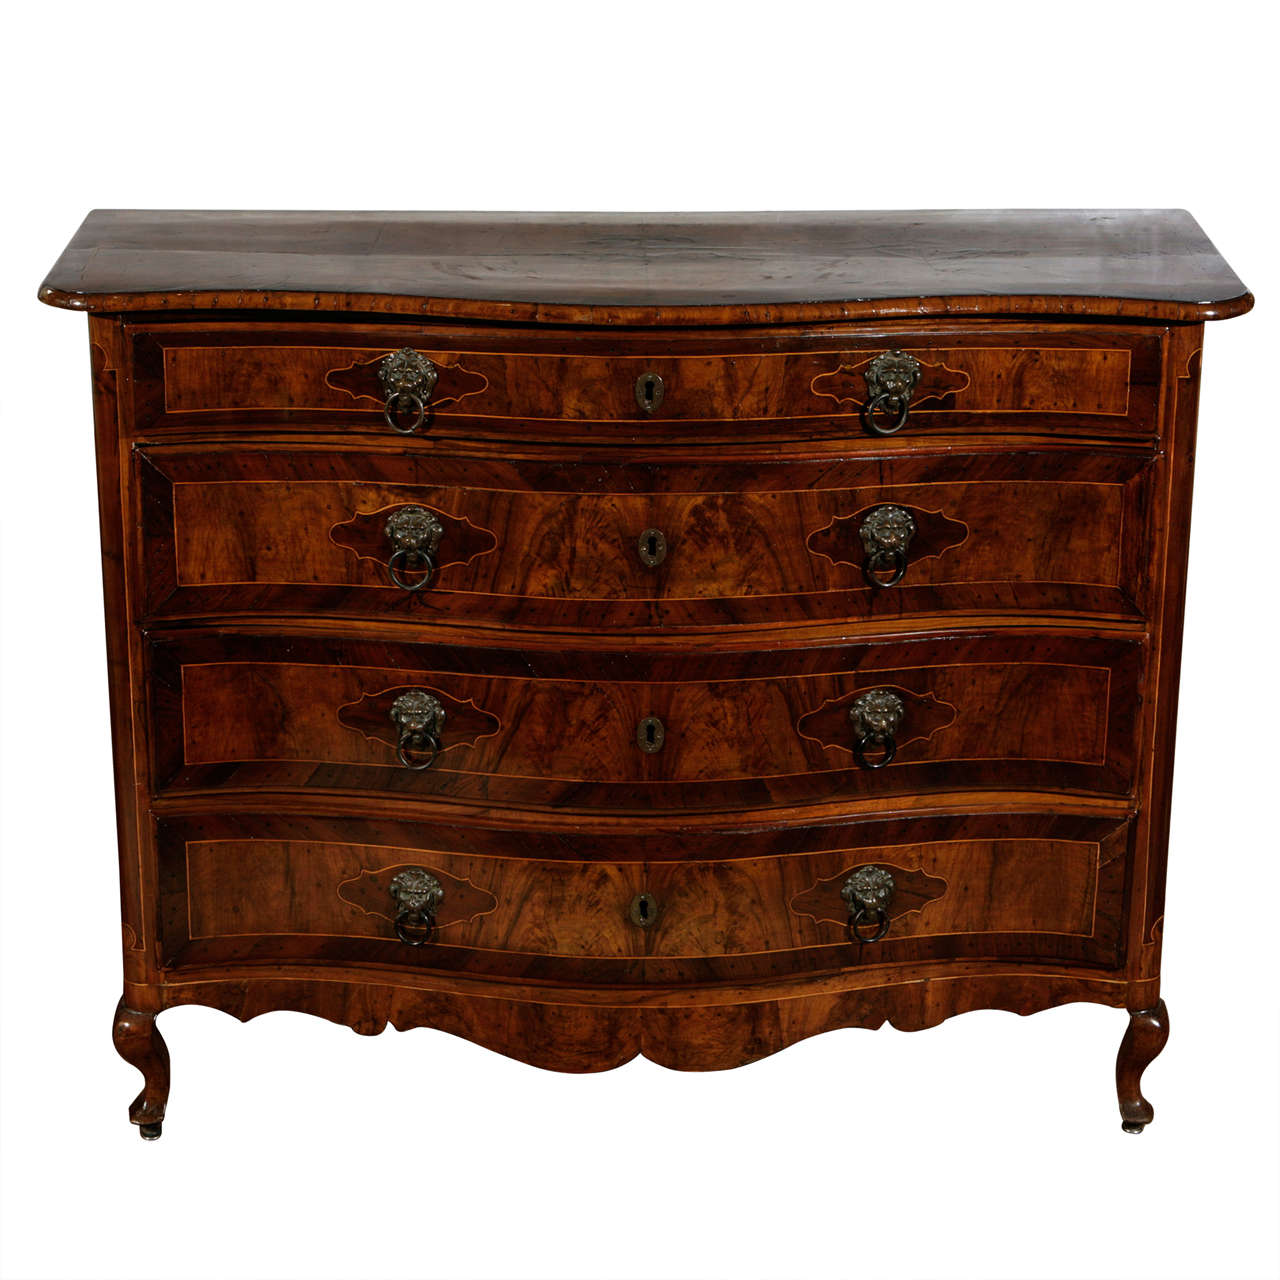 18th Century Italian Four Drawer Serpentine Front Commode